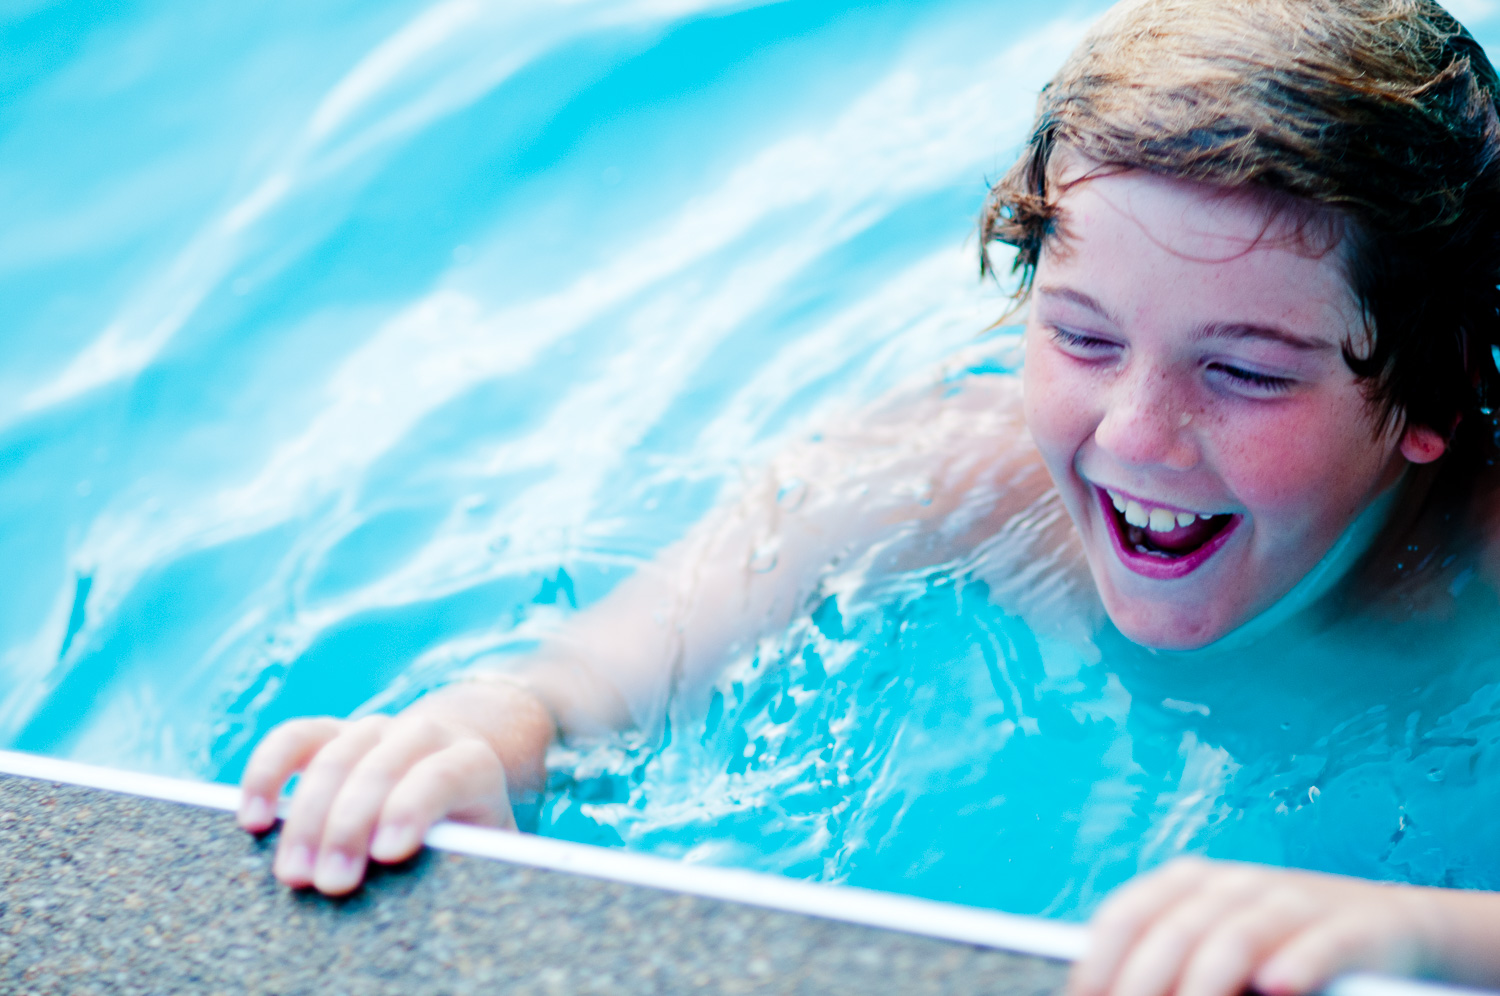 portrait of child smiling in pool